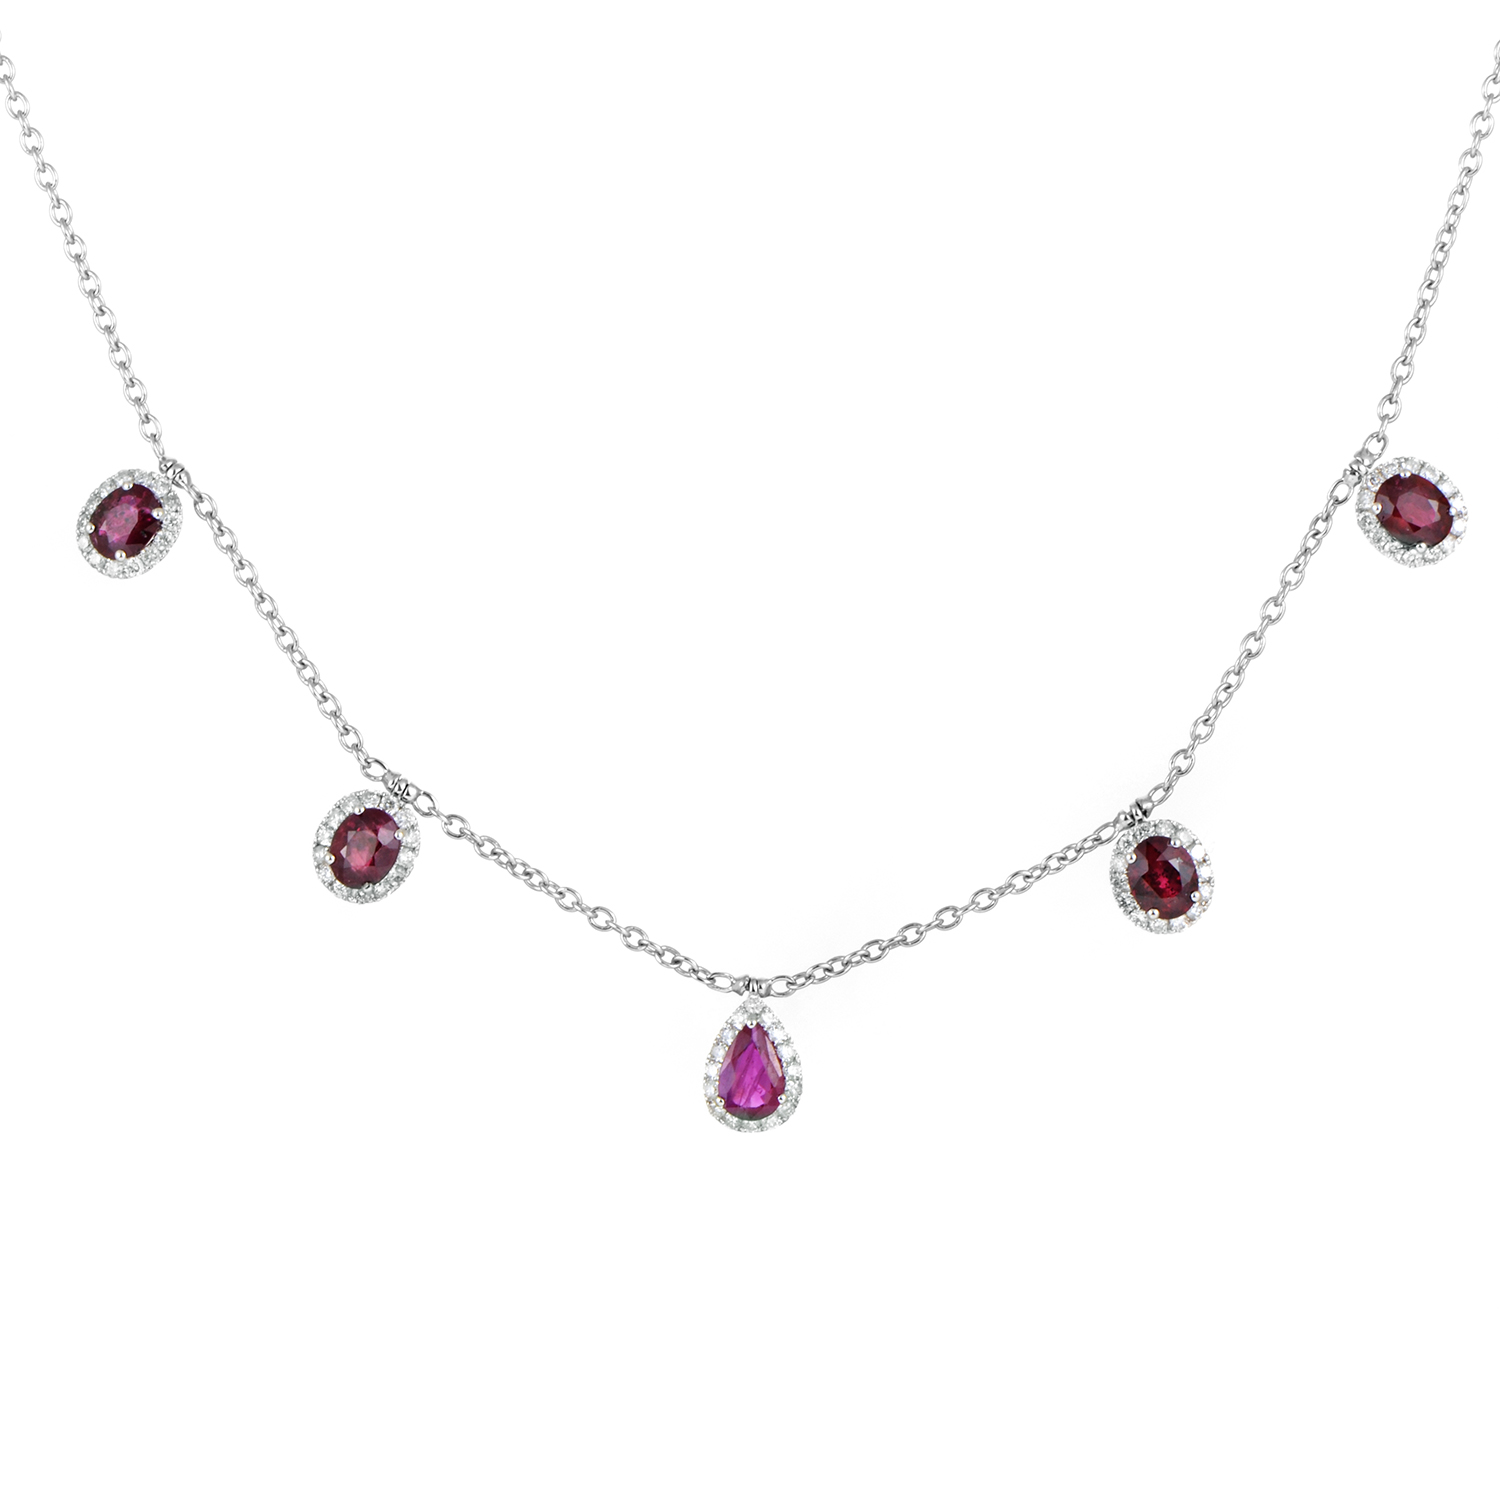 Women's 18K White Gold Dangling Diamond & Ruby Necklace KEUR9512NTBZRU